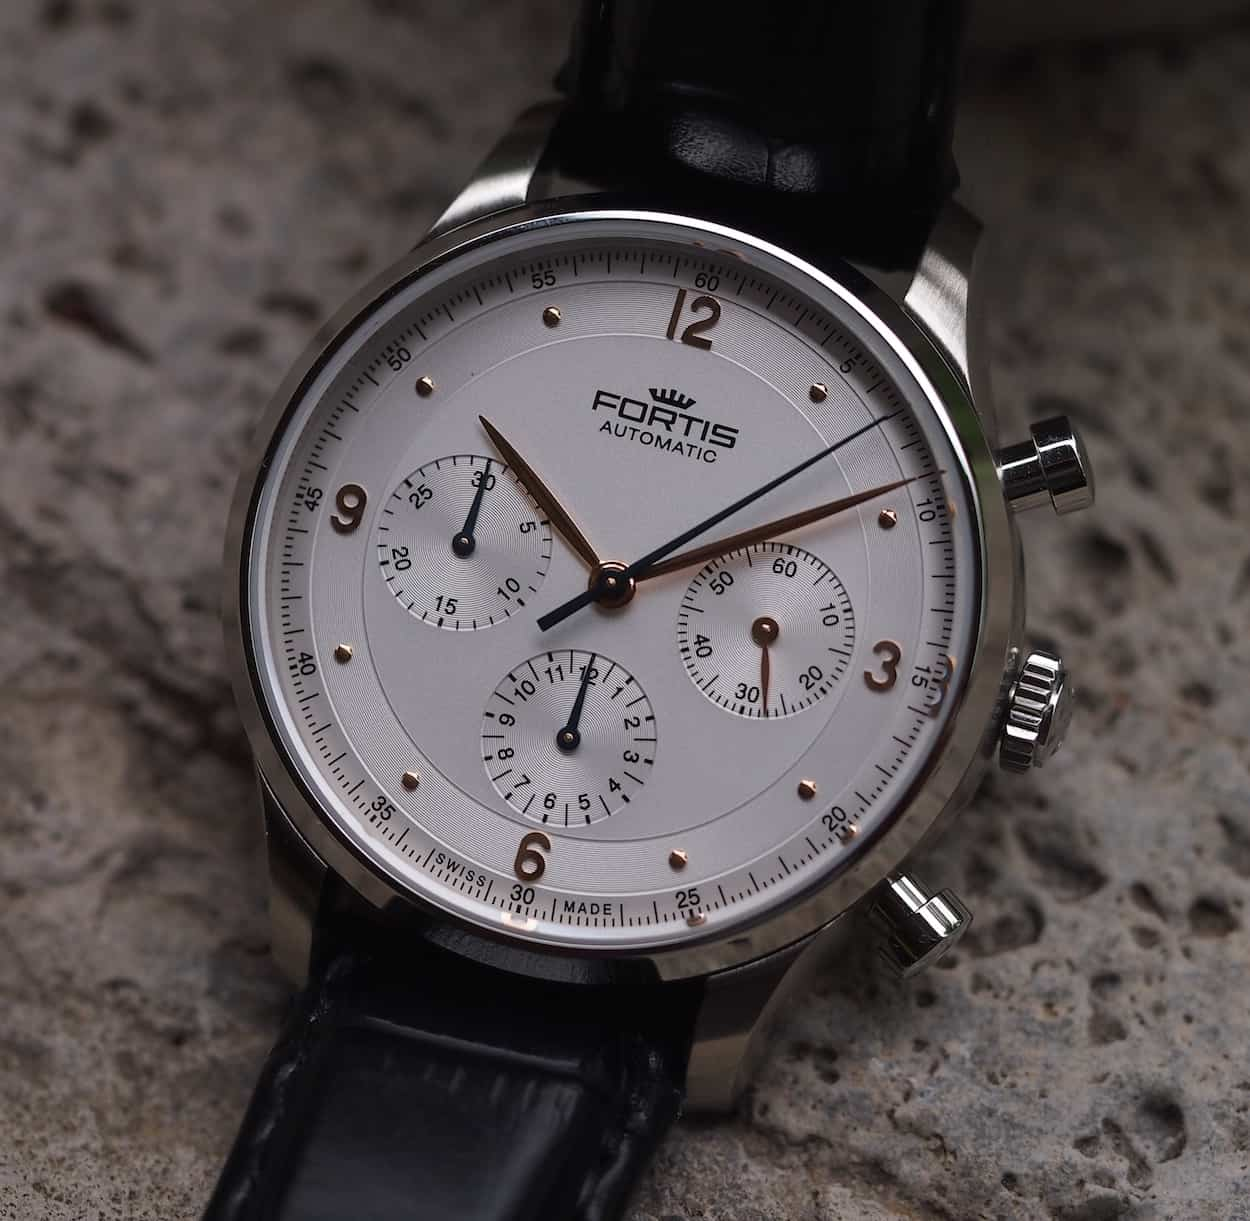 Fortis Tycoon capped pushers